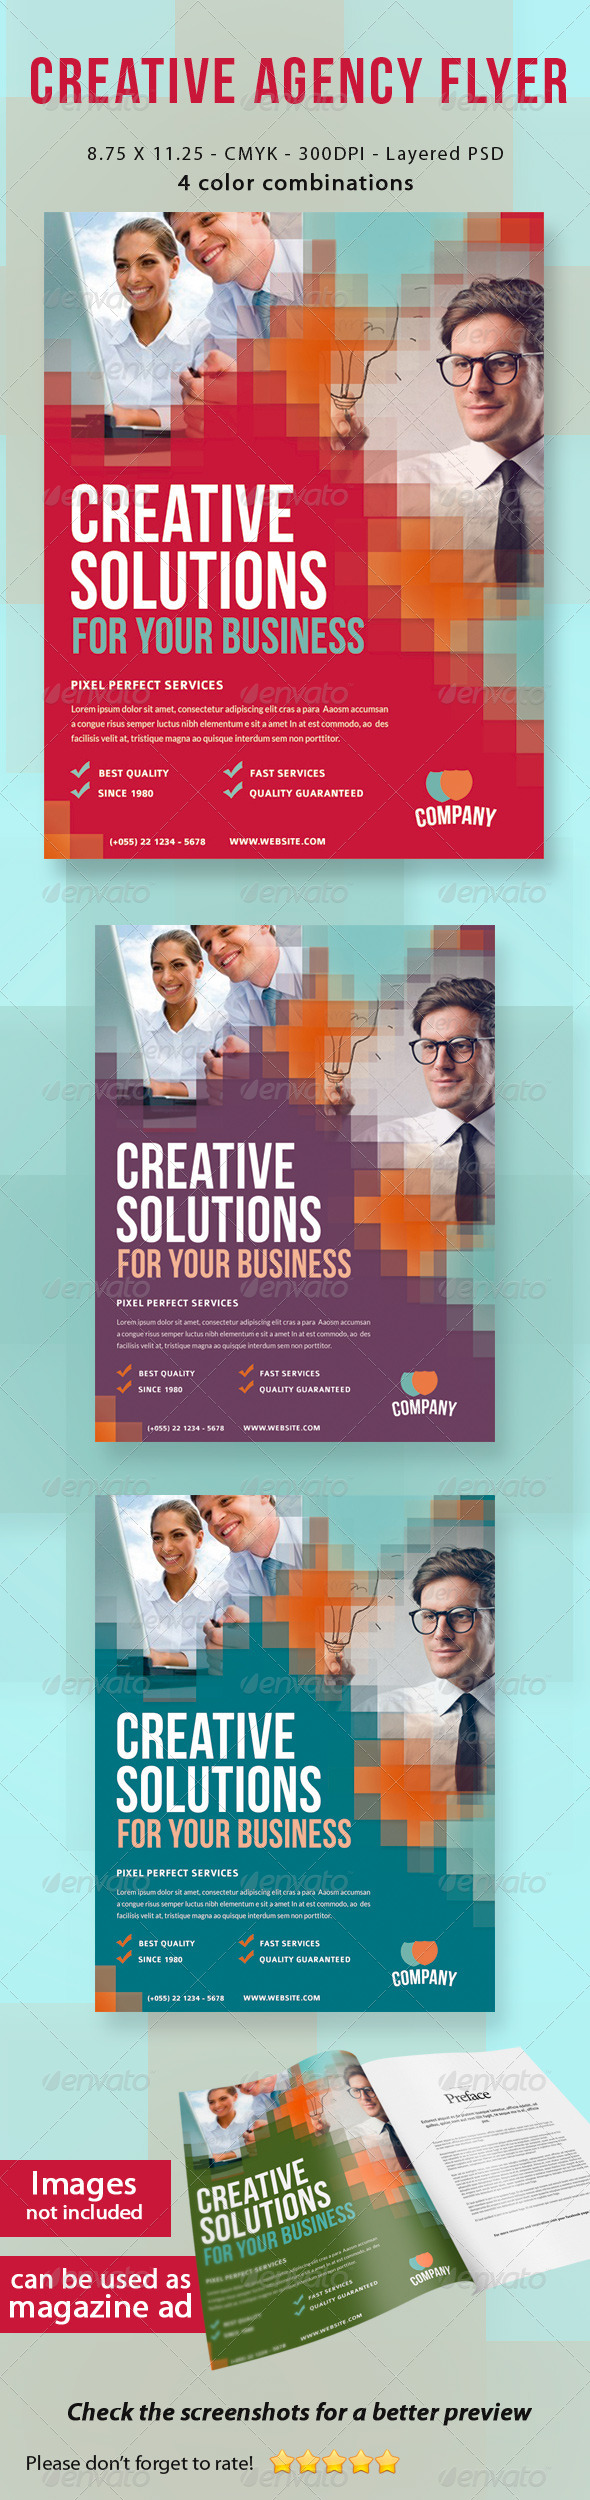 Advertising Agency Flyer Download Creative Agency Flyer